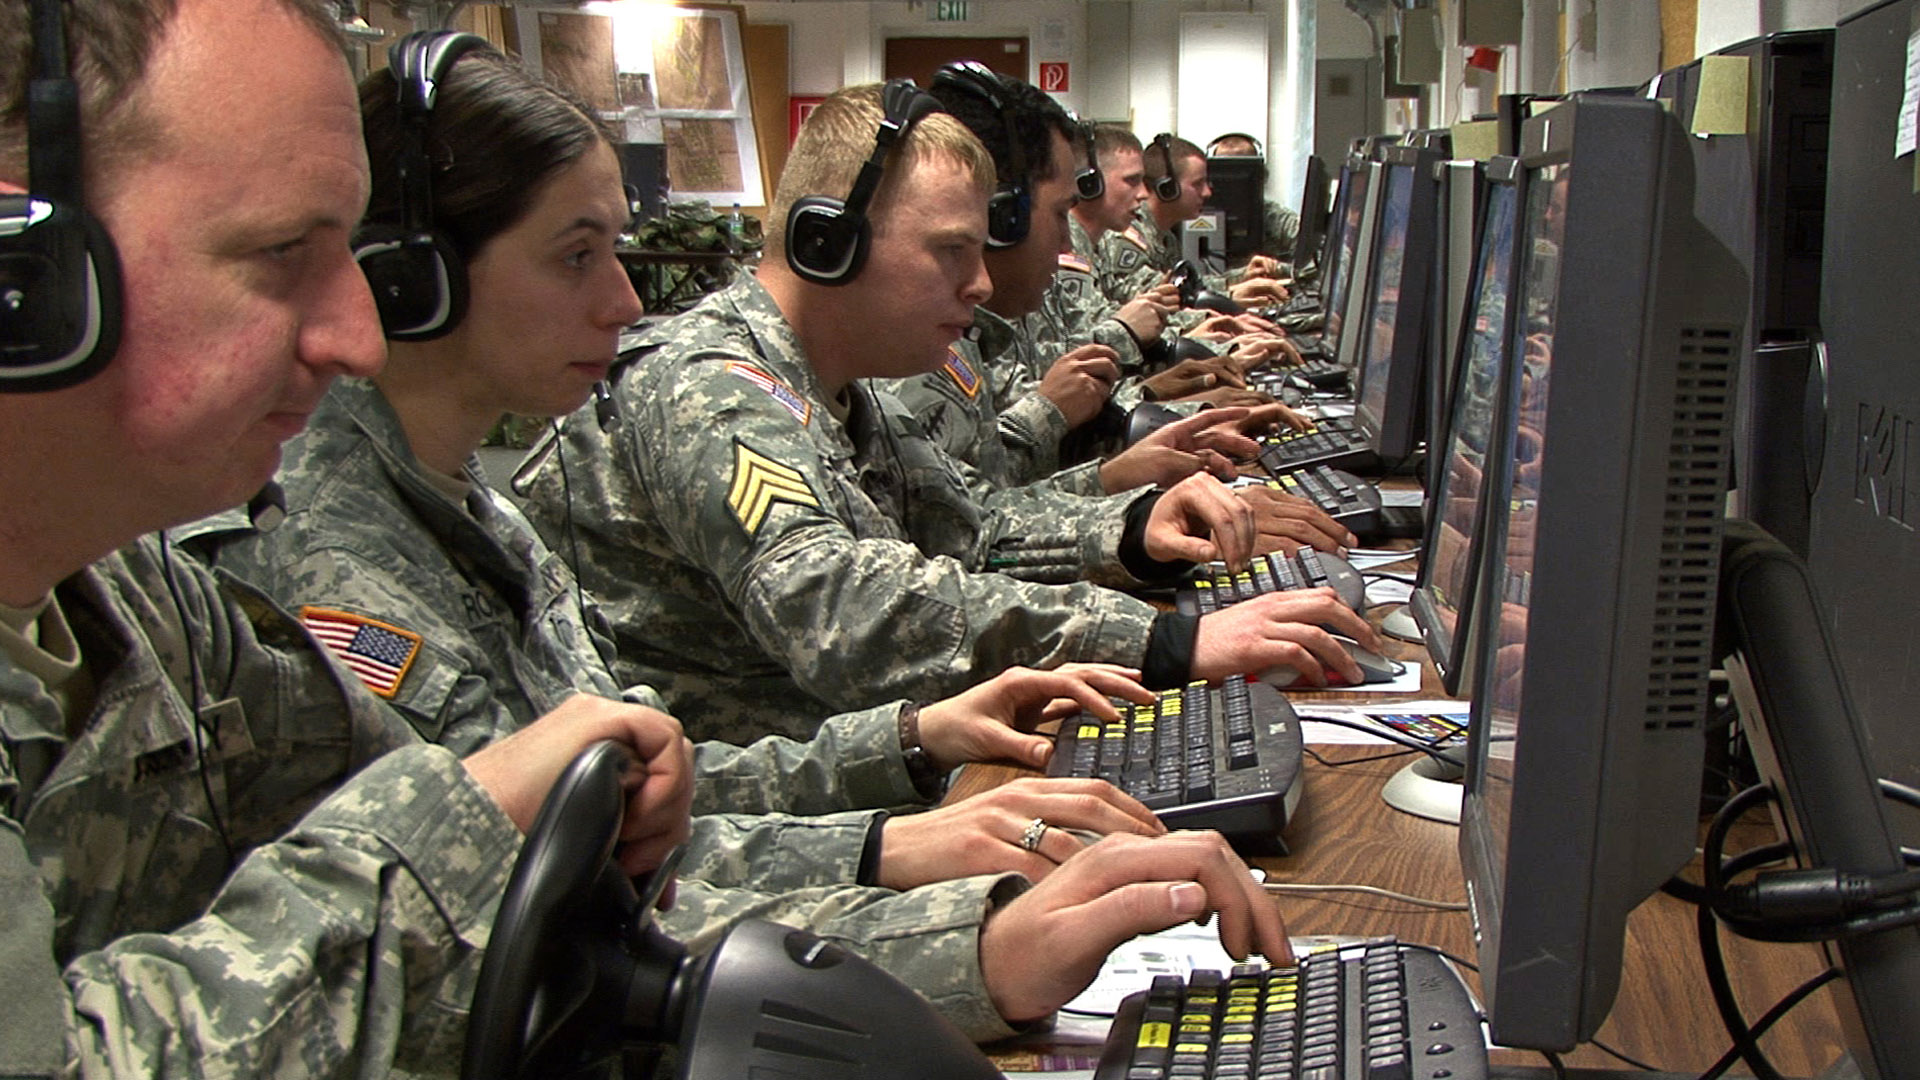 https://upload.wikimedia.org/wikipedia/commons/5/5c/Flickr_-_The_U.S._Army_-_NCO_Academy_Teaches_Leadership_in_Virtual_Environment.jpg